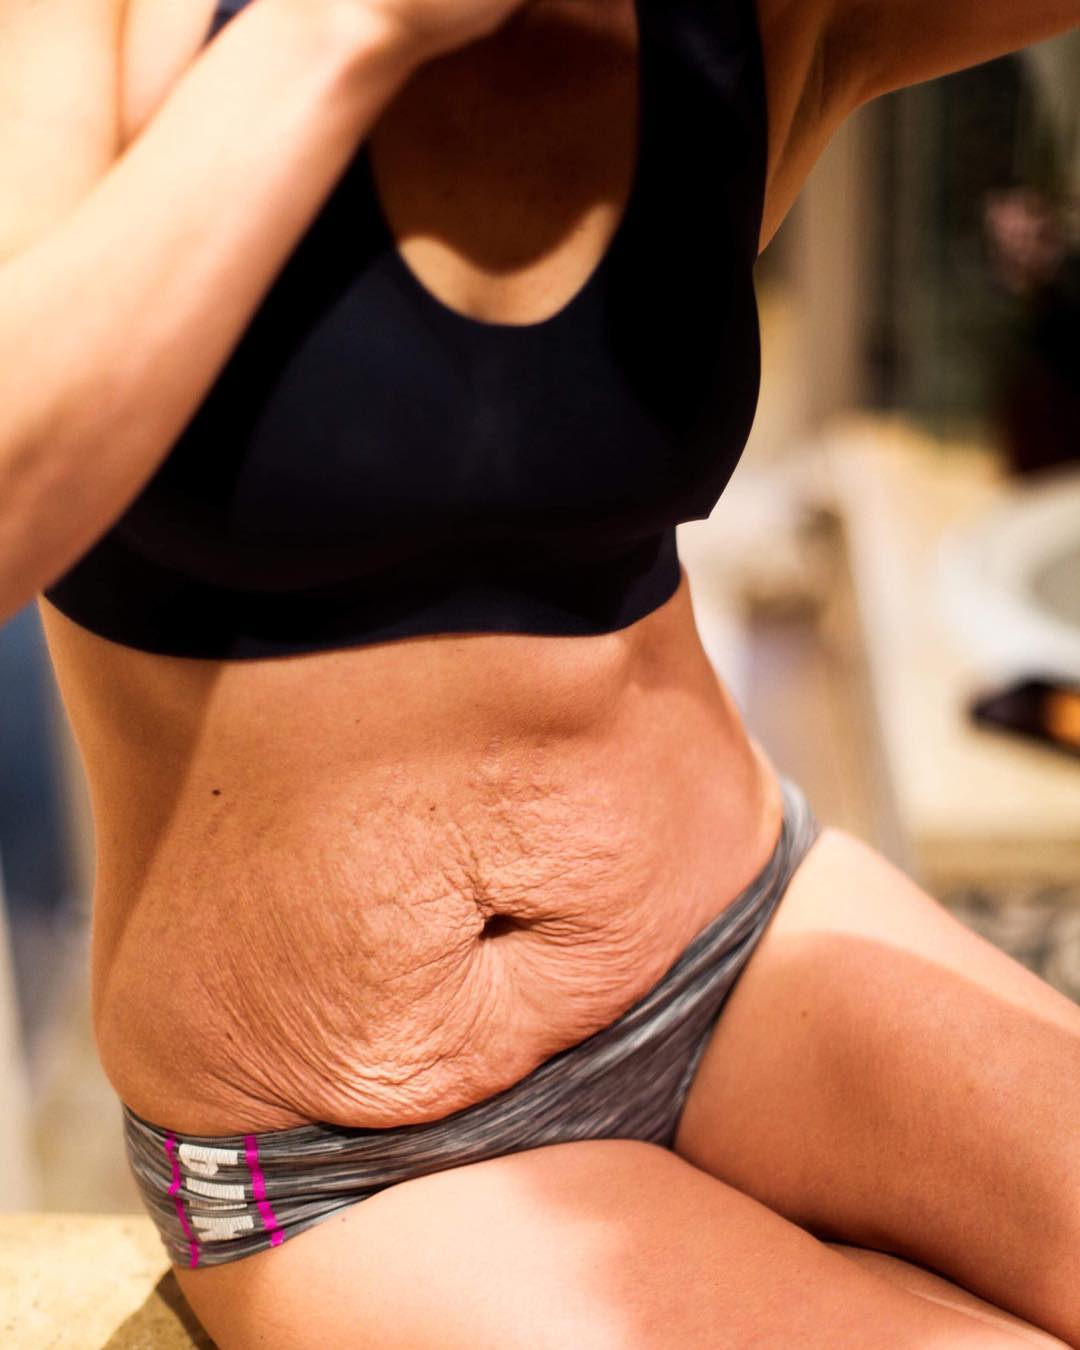 Influencer Shares Unedited Photo of Her Postpartum Stomach Wrinkles in Beautifully Raw Photo